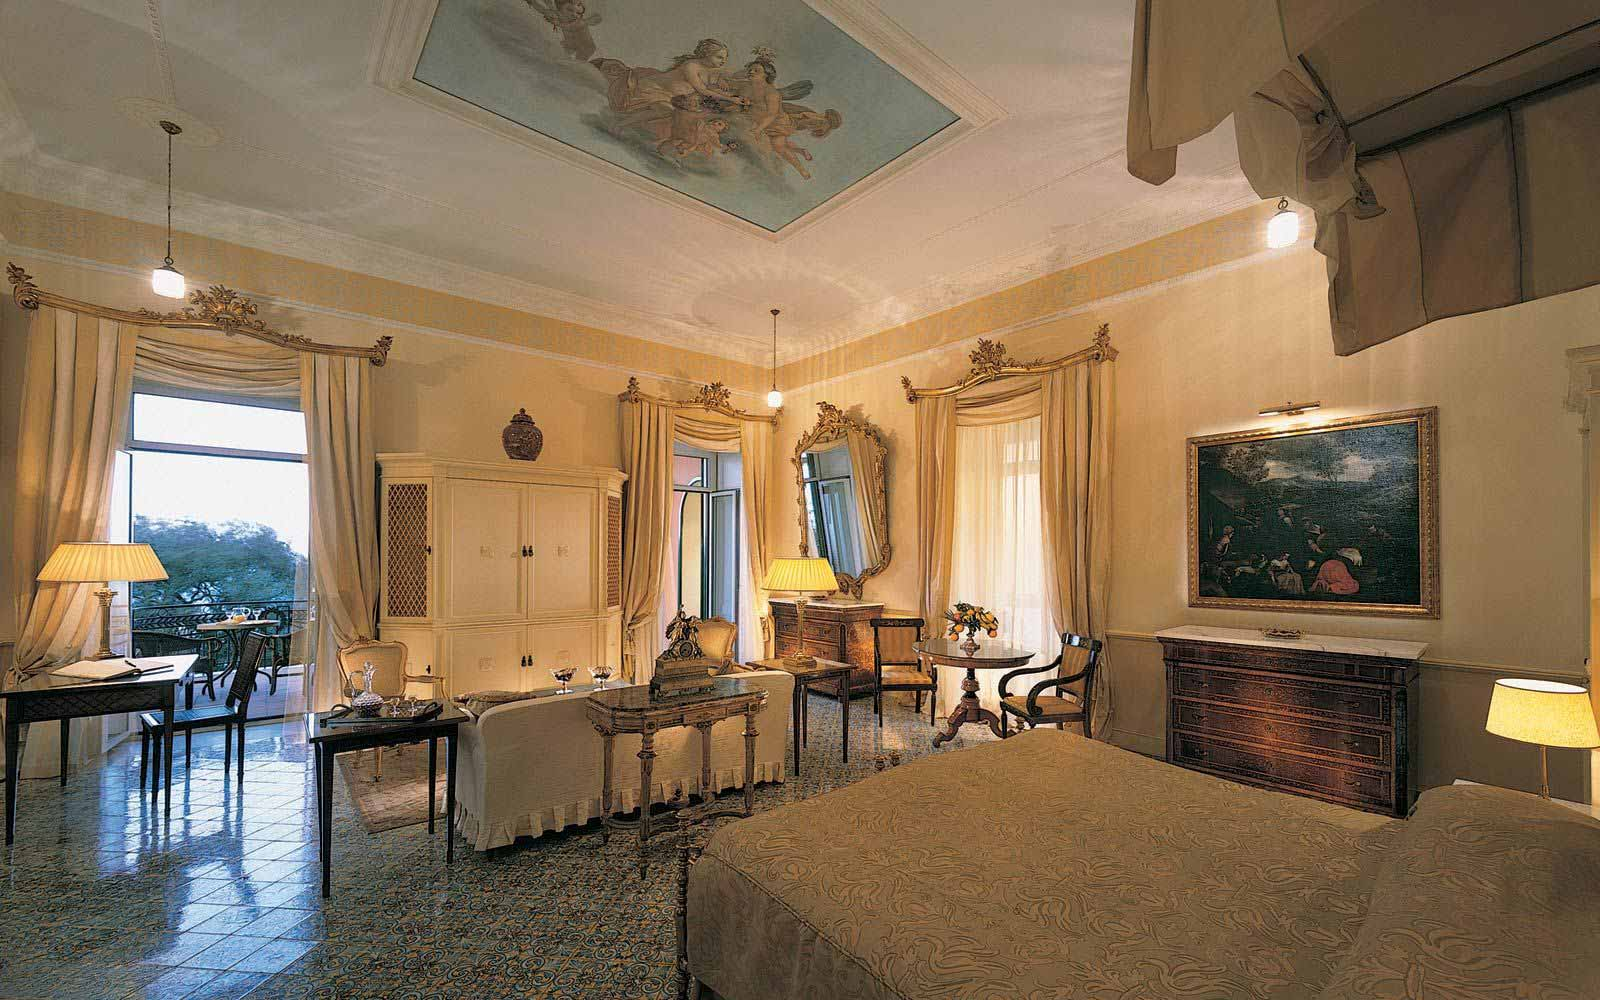 Pavarotti Suite at the Grand Hotel Excelsior Vittoria